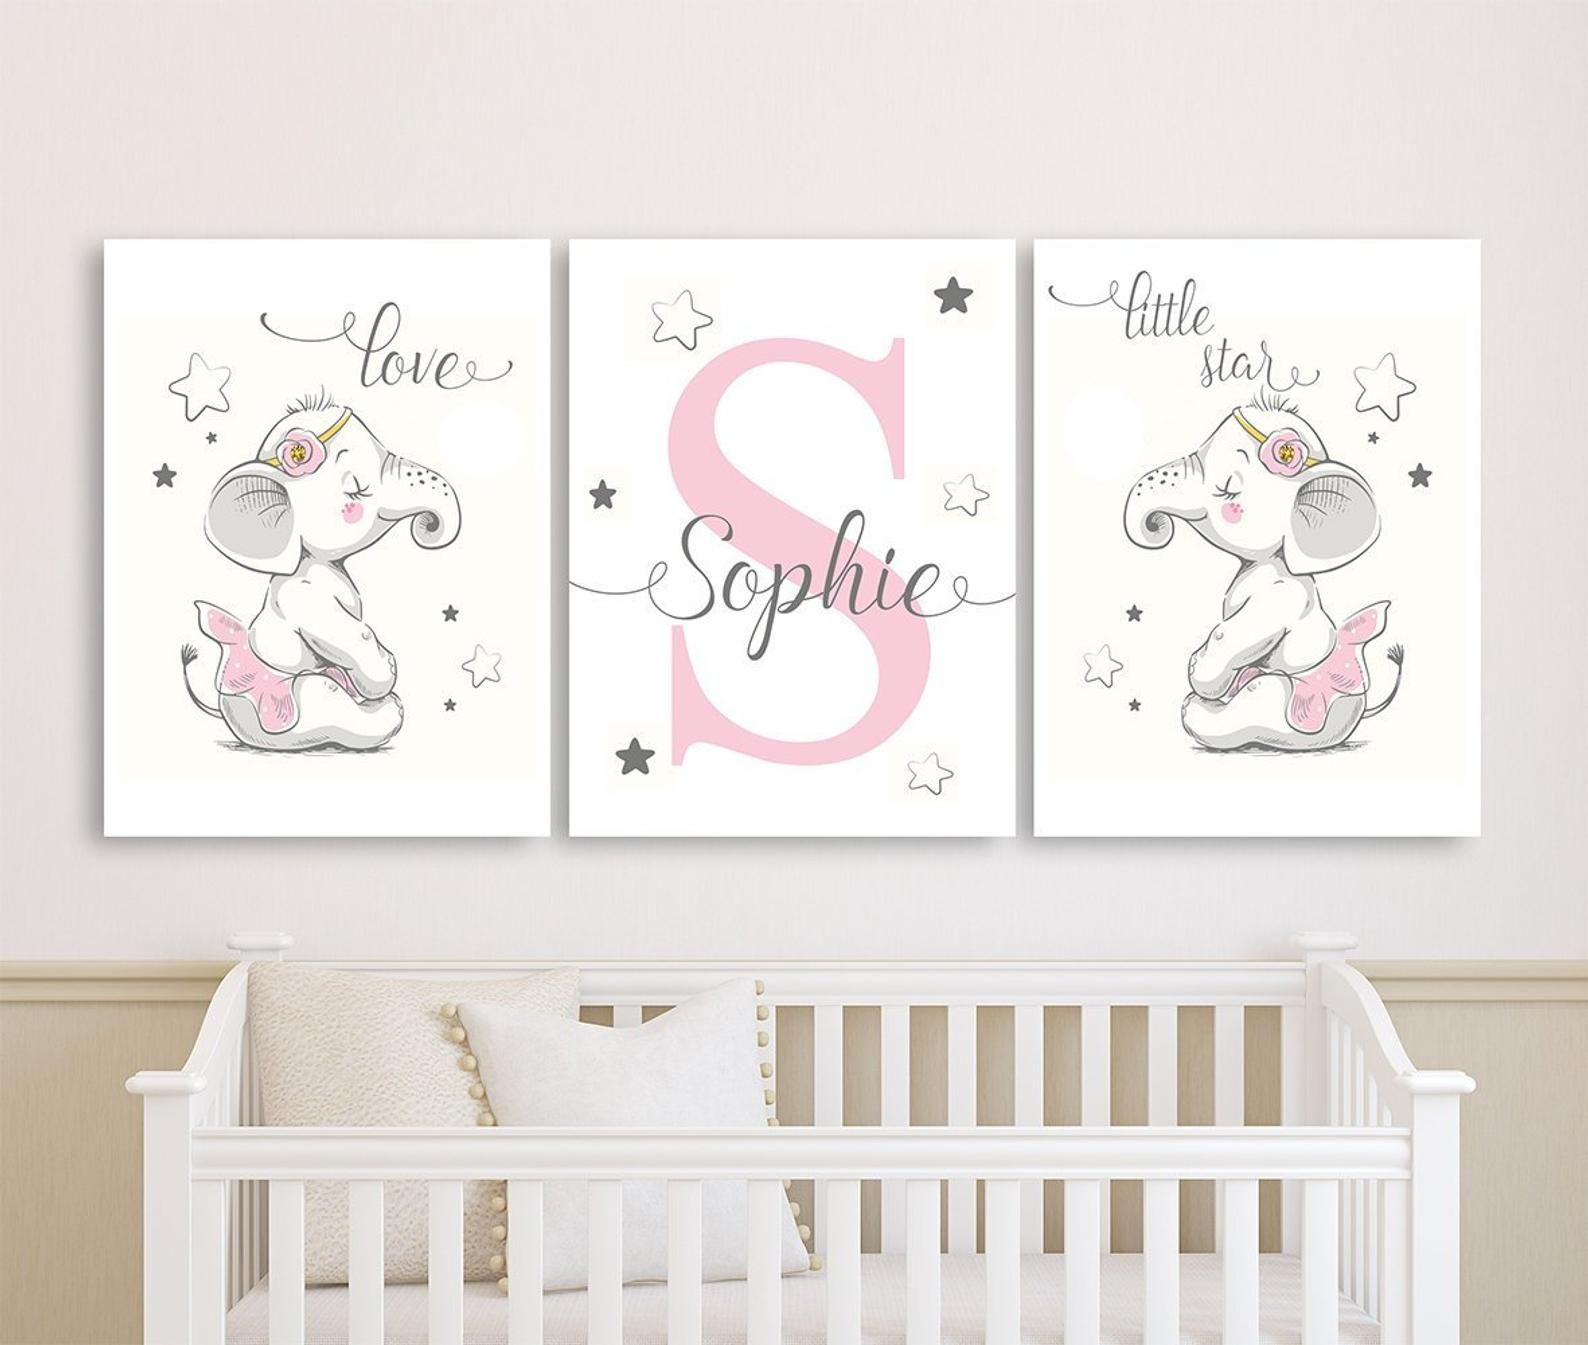 Baby Girl Nursery Wall Art Canvases Little Star Elephant Personalized Nursery Canvas Pink Gray Monogram Nursery Canvas Set Of 3 In 2021 Baby Elephant Nursery Elephant Nursery Girl Baby Girl Nursery Wall Art